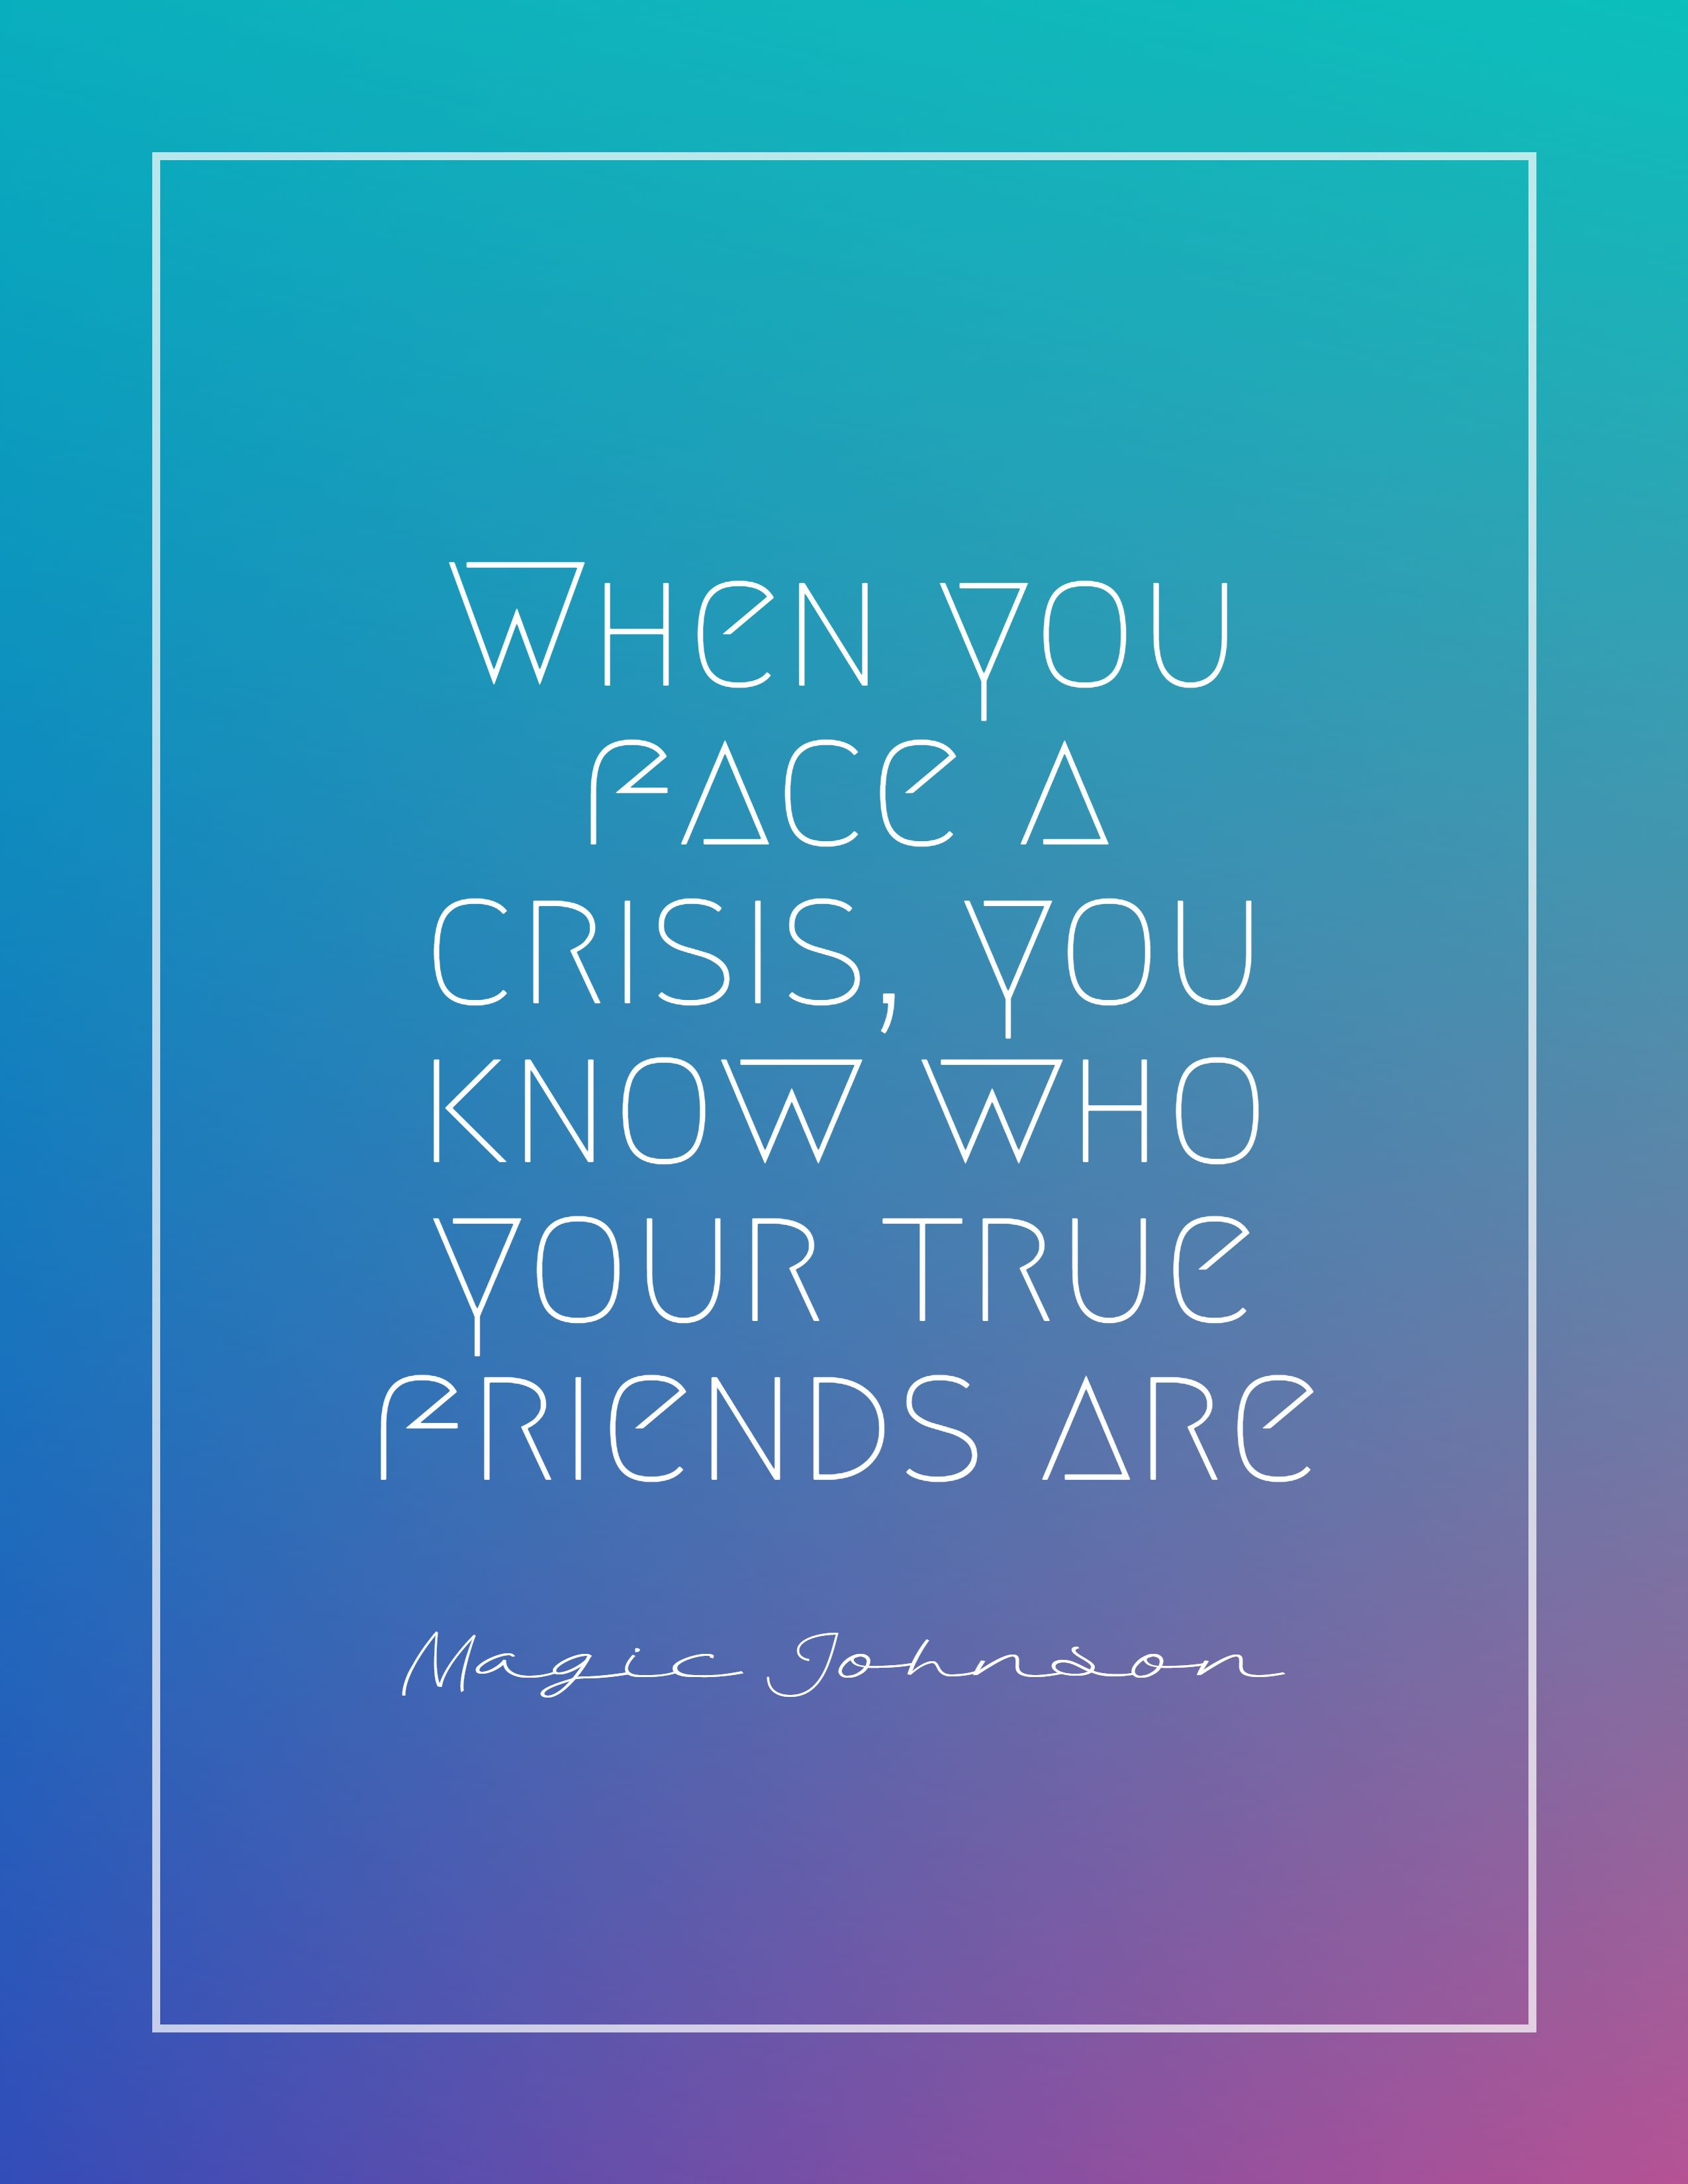 Quotes image of When you face a crisis, you know who your true friends are